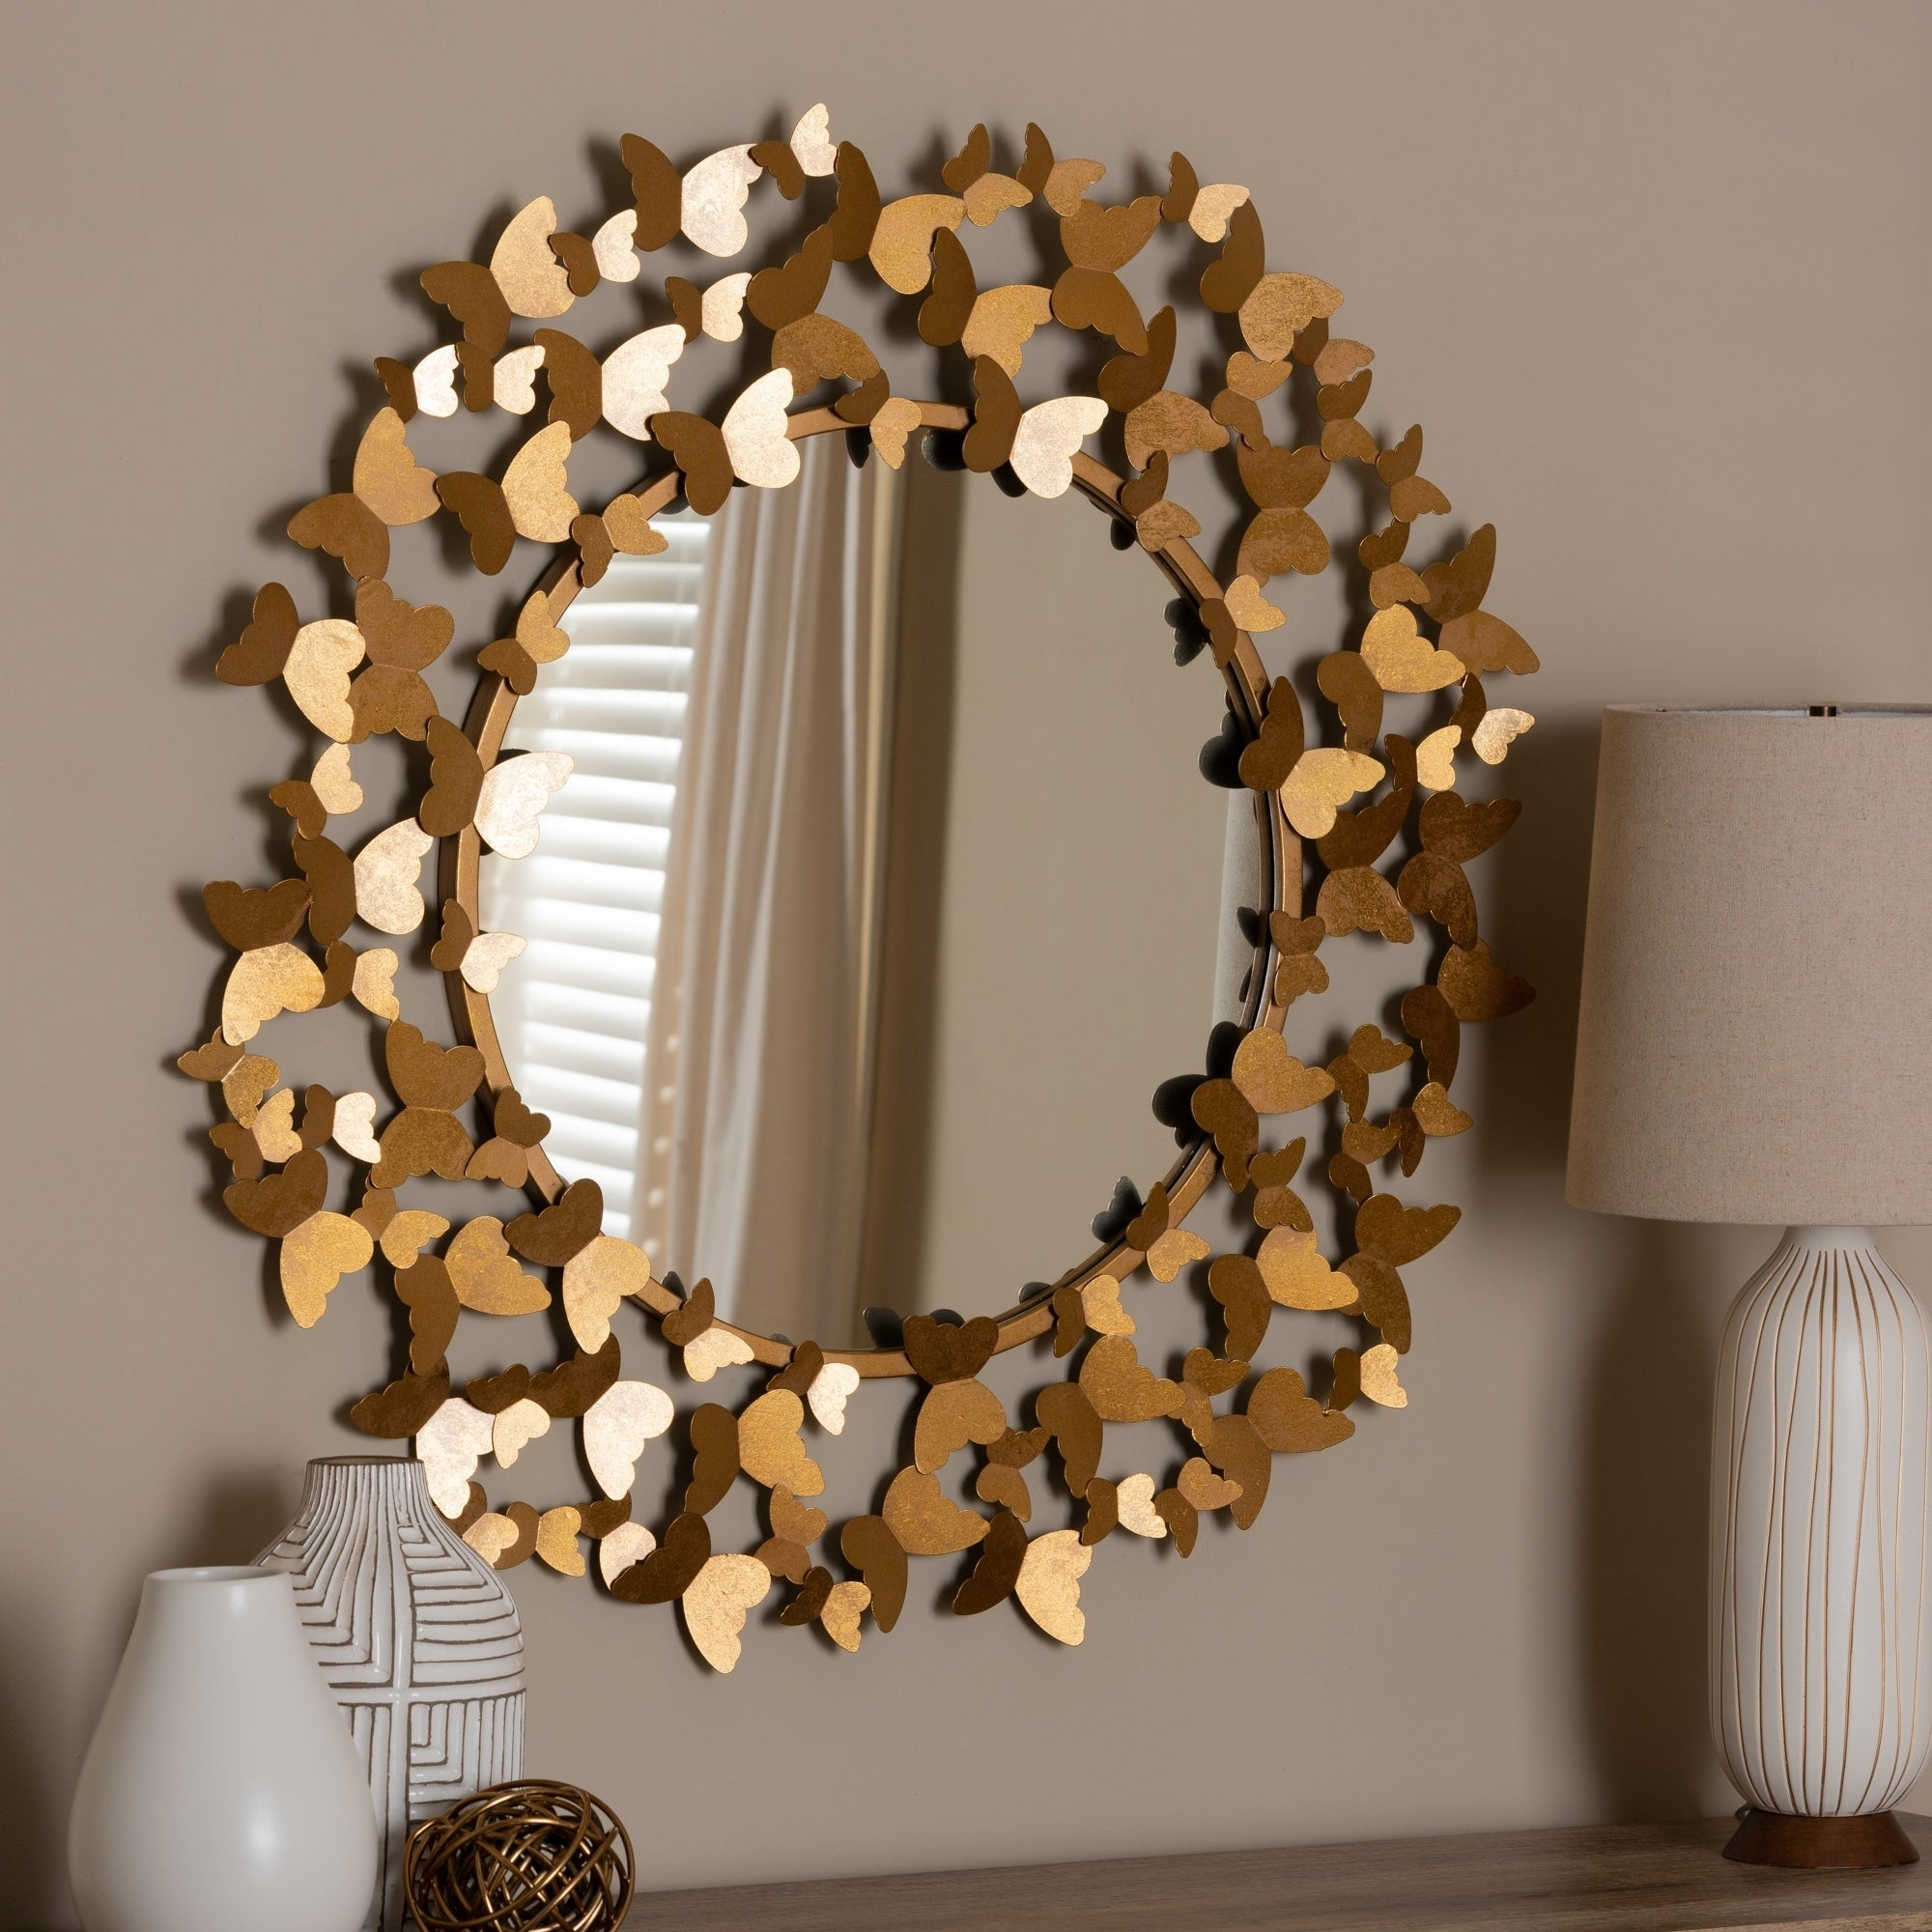 Accent Mirrors | Shop Online At Overstock With Regard To Shildon Beveled Accent Mirrors (View 19 of 20)